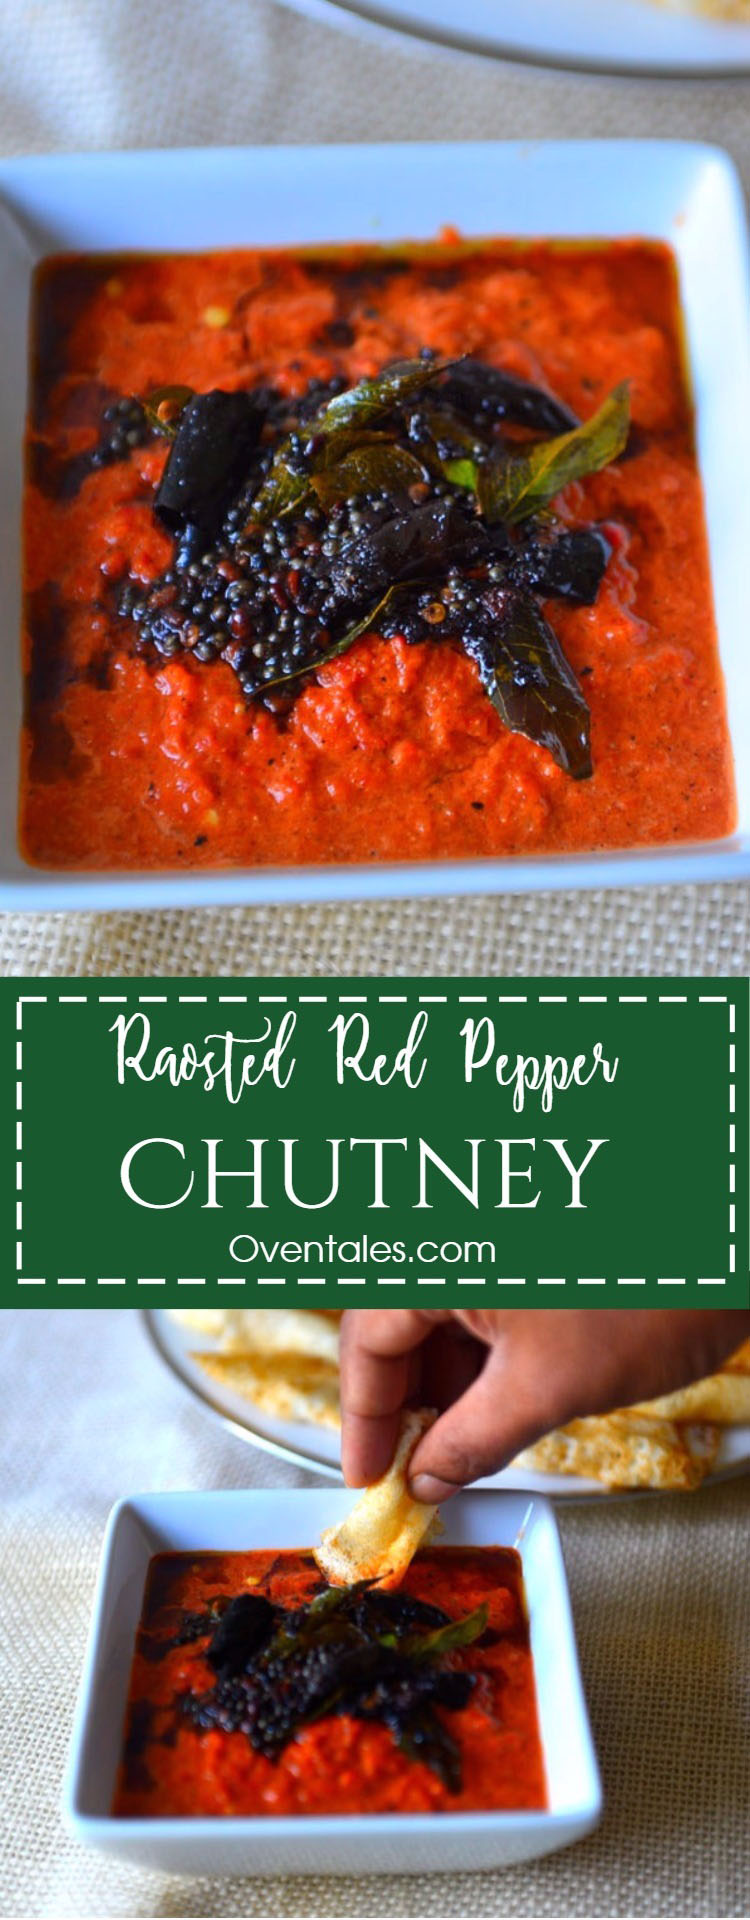 Roasted Red Pepper Chutney